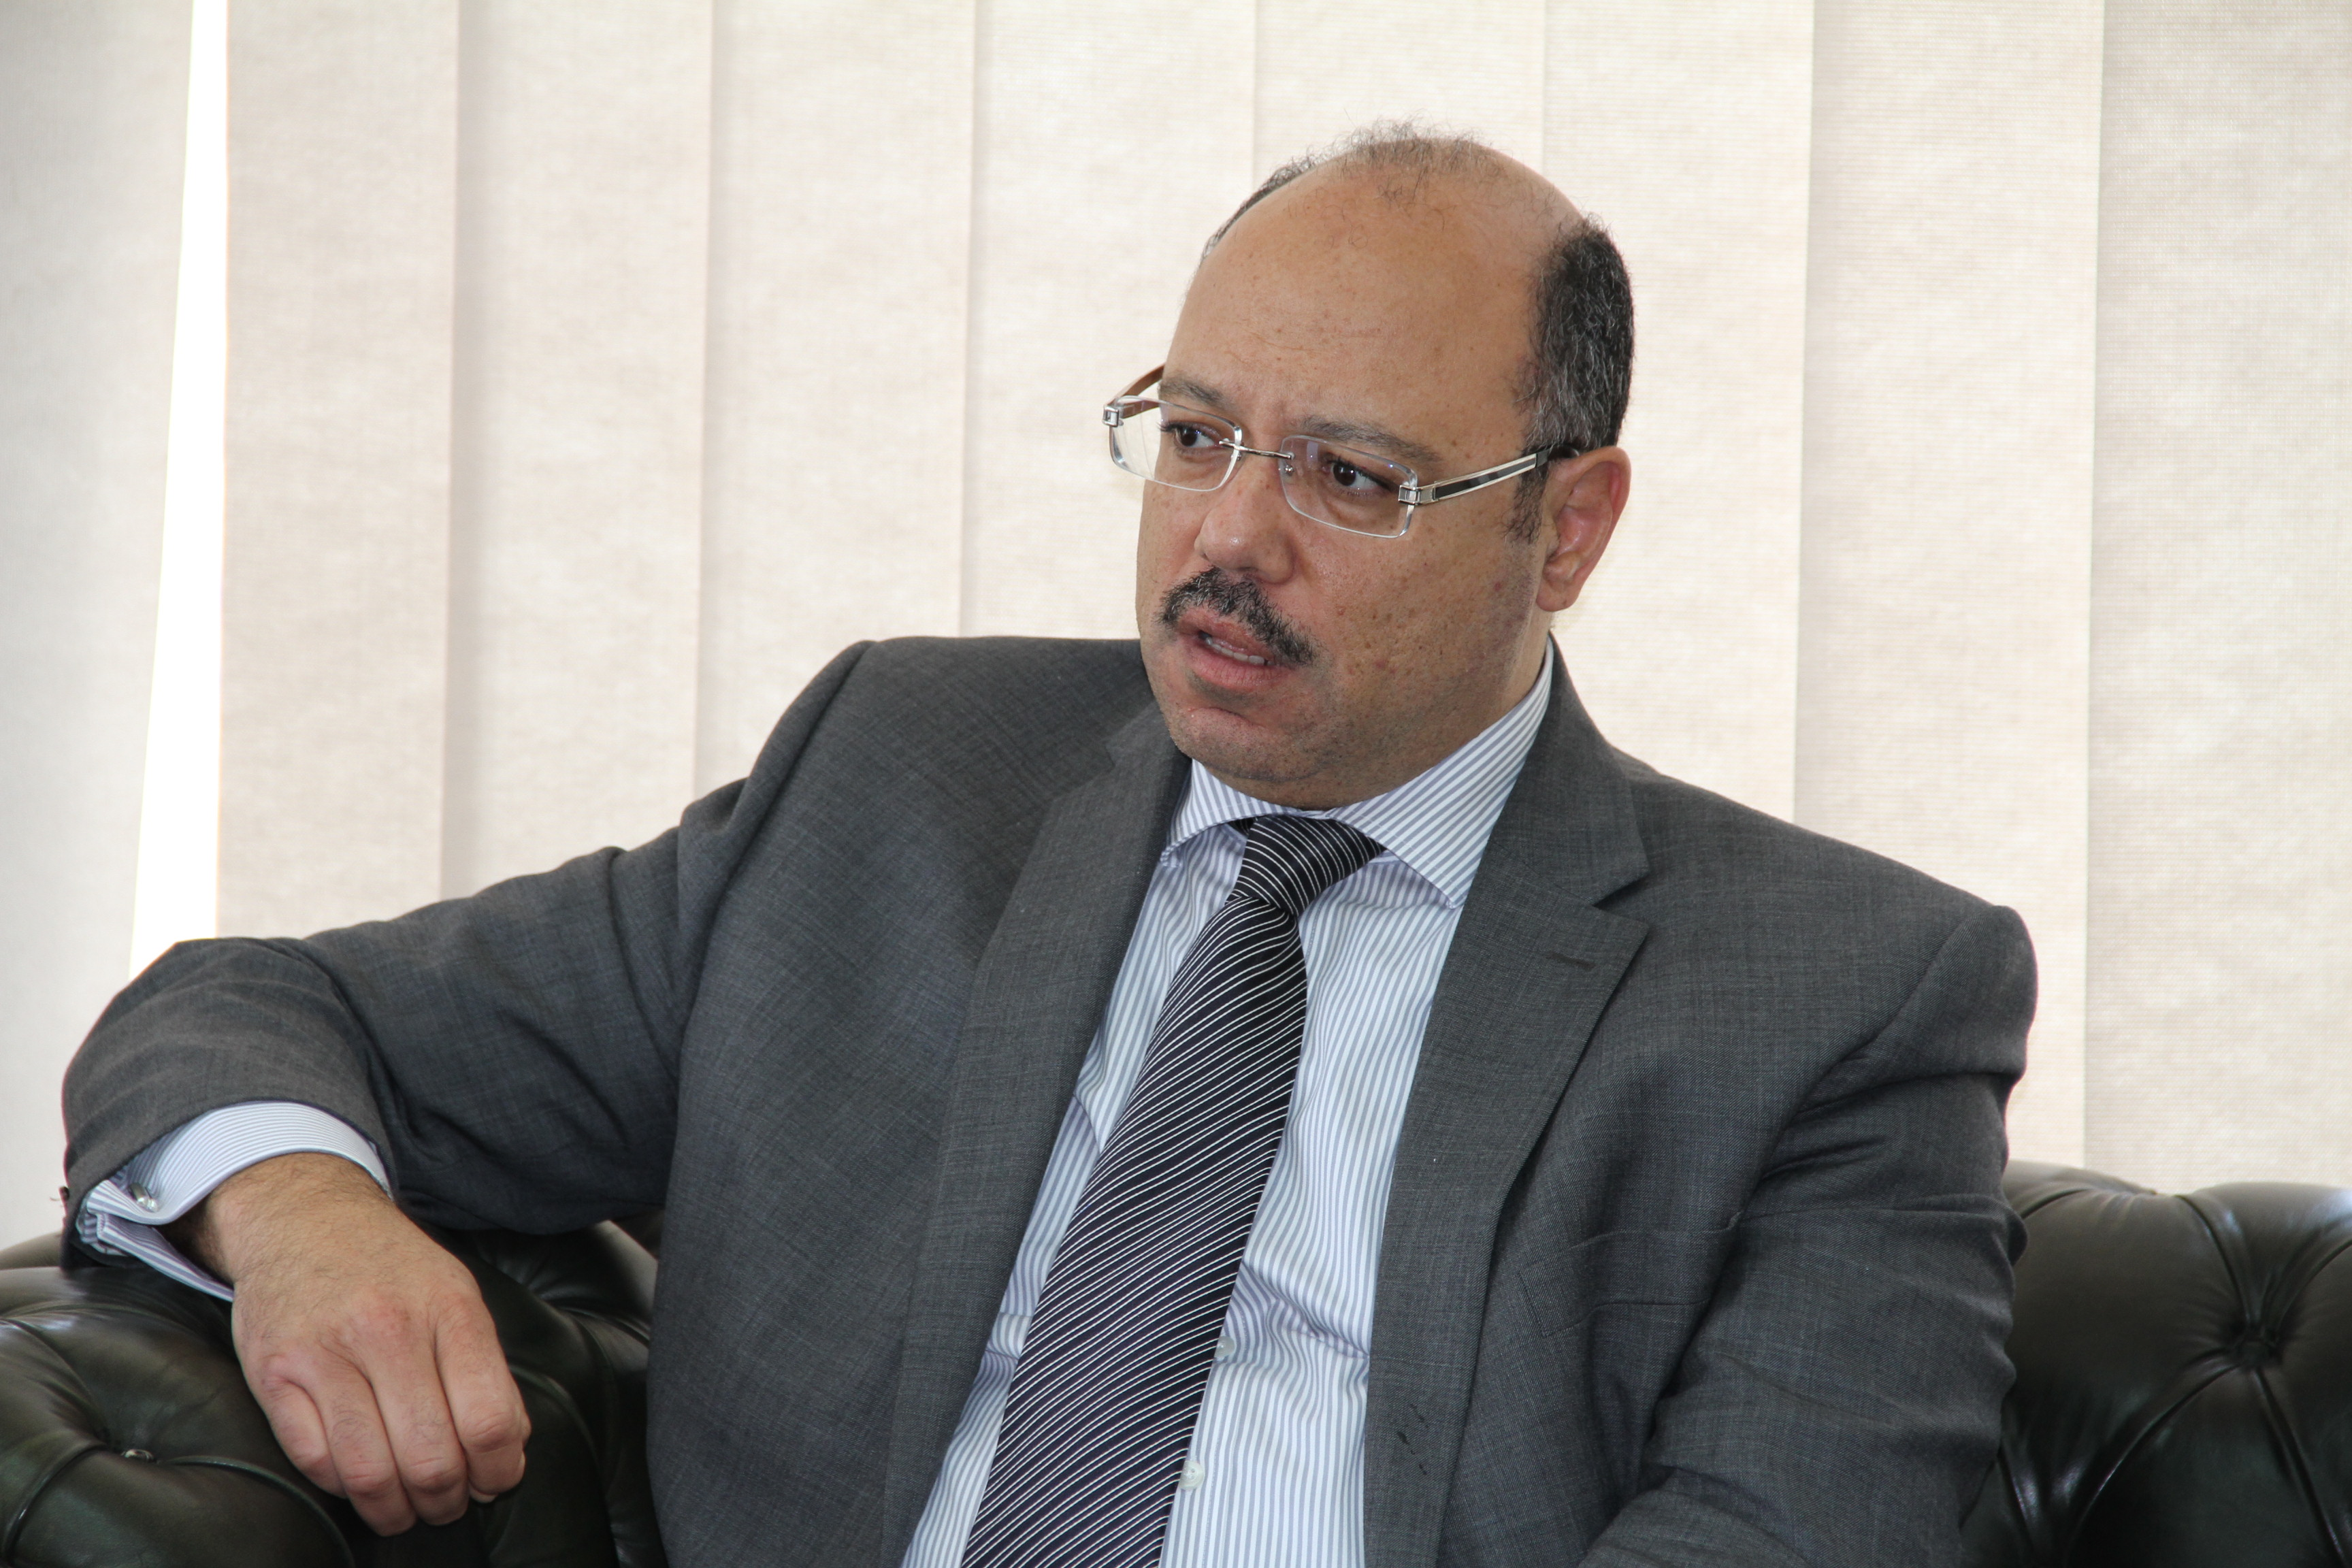 Minister of Finance Hany Kadry Dimian. (DNE Photo)